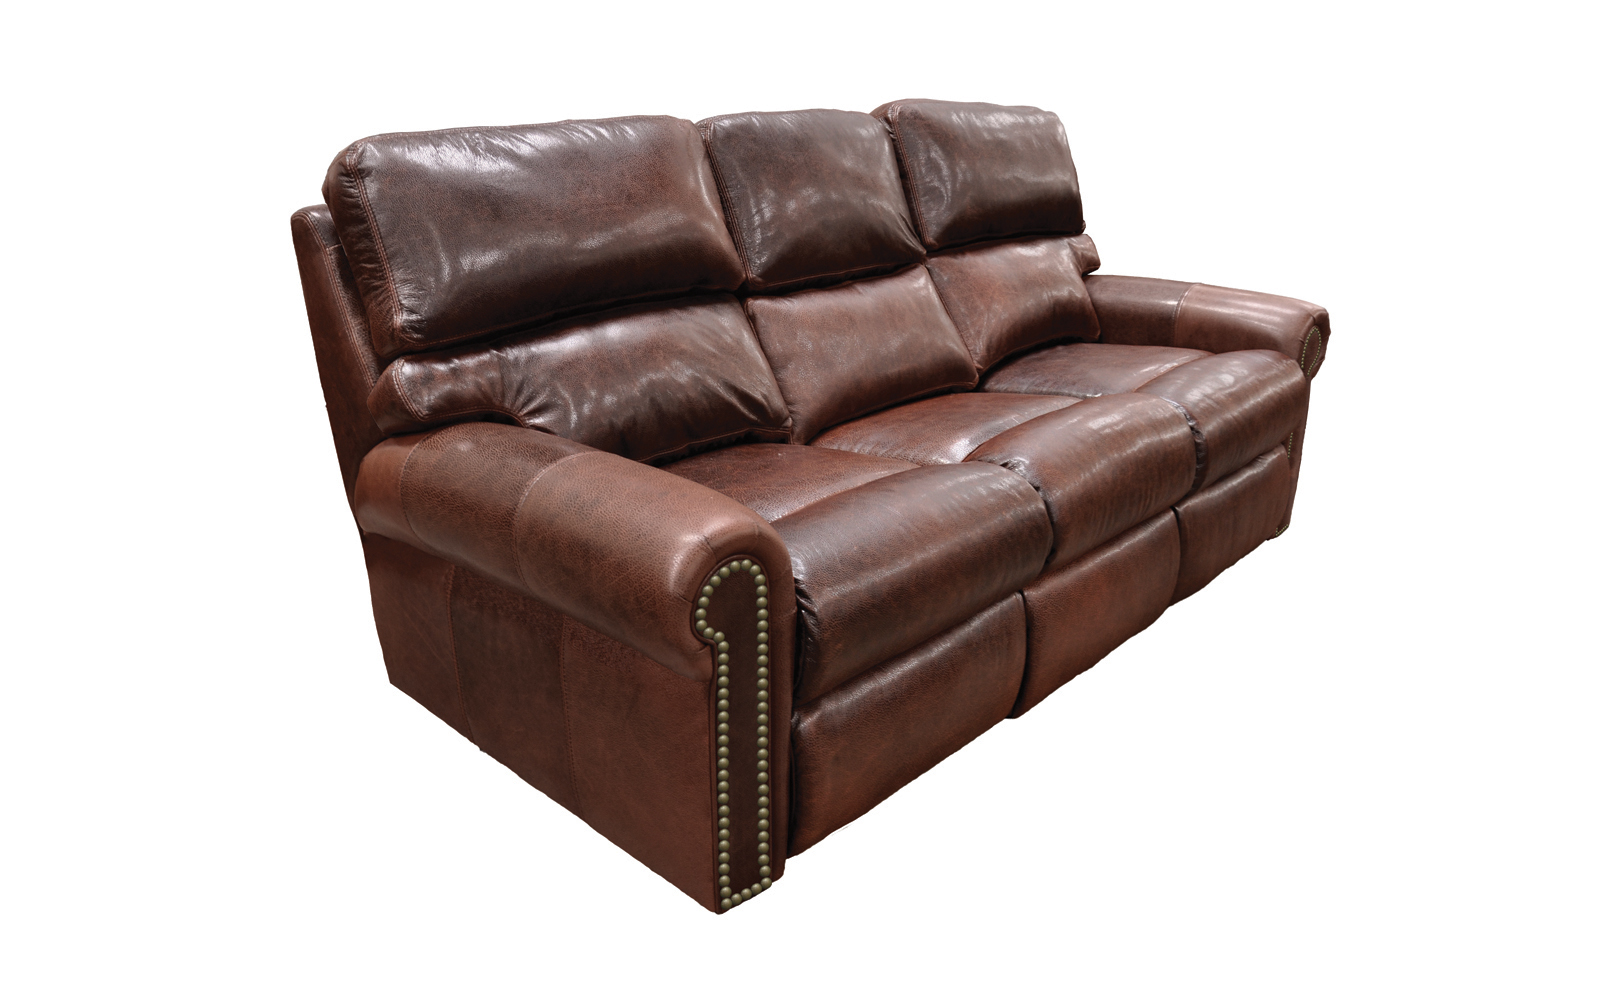 4087 leather sectional sofa with recliners pottery barn cameron connor reclining  arizona interiors